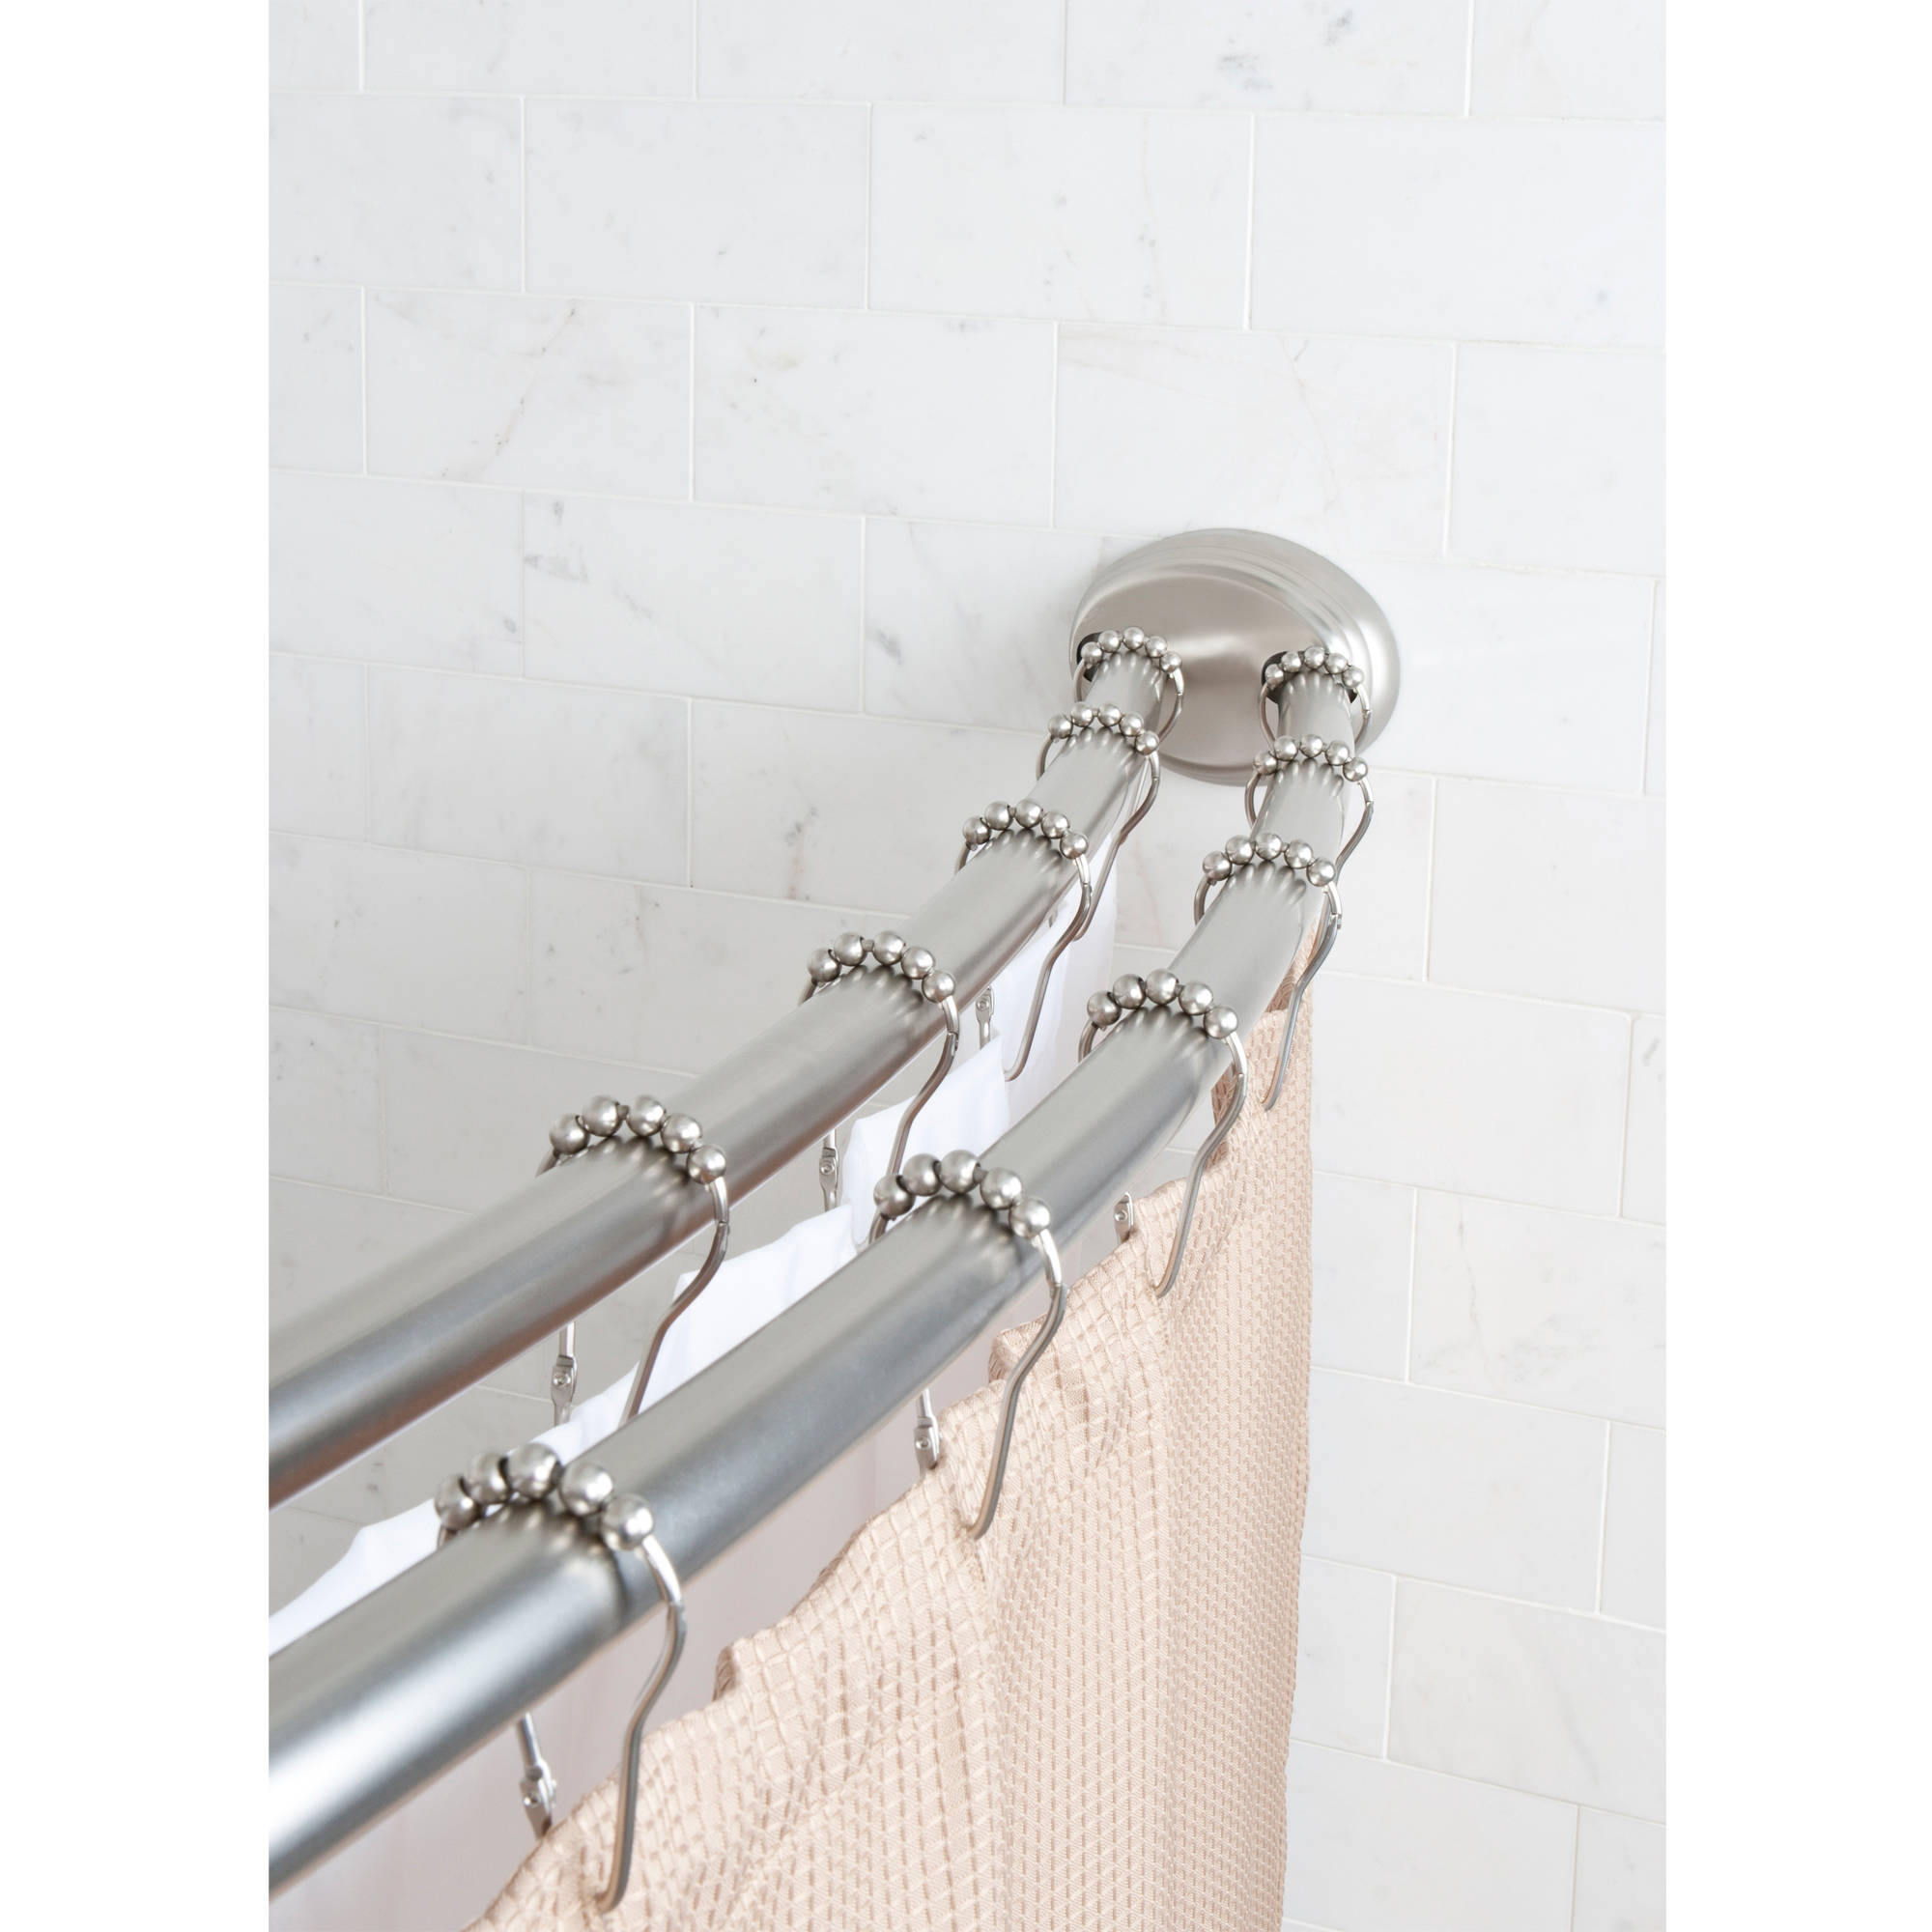 Shower Stall Curtain Rod Adjustable Shower Curtain Ideas regarding measurements 2000 X 2000